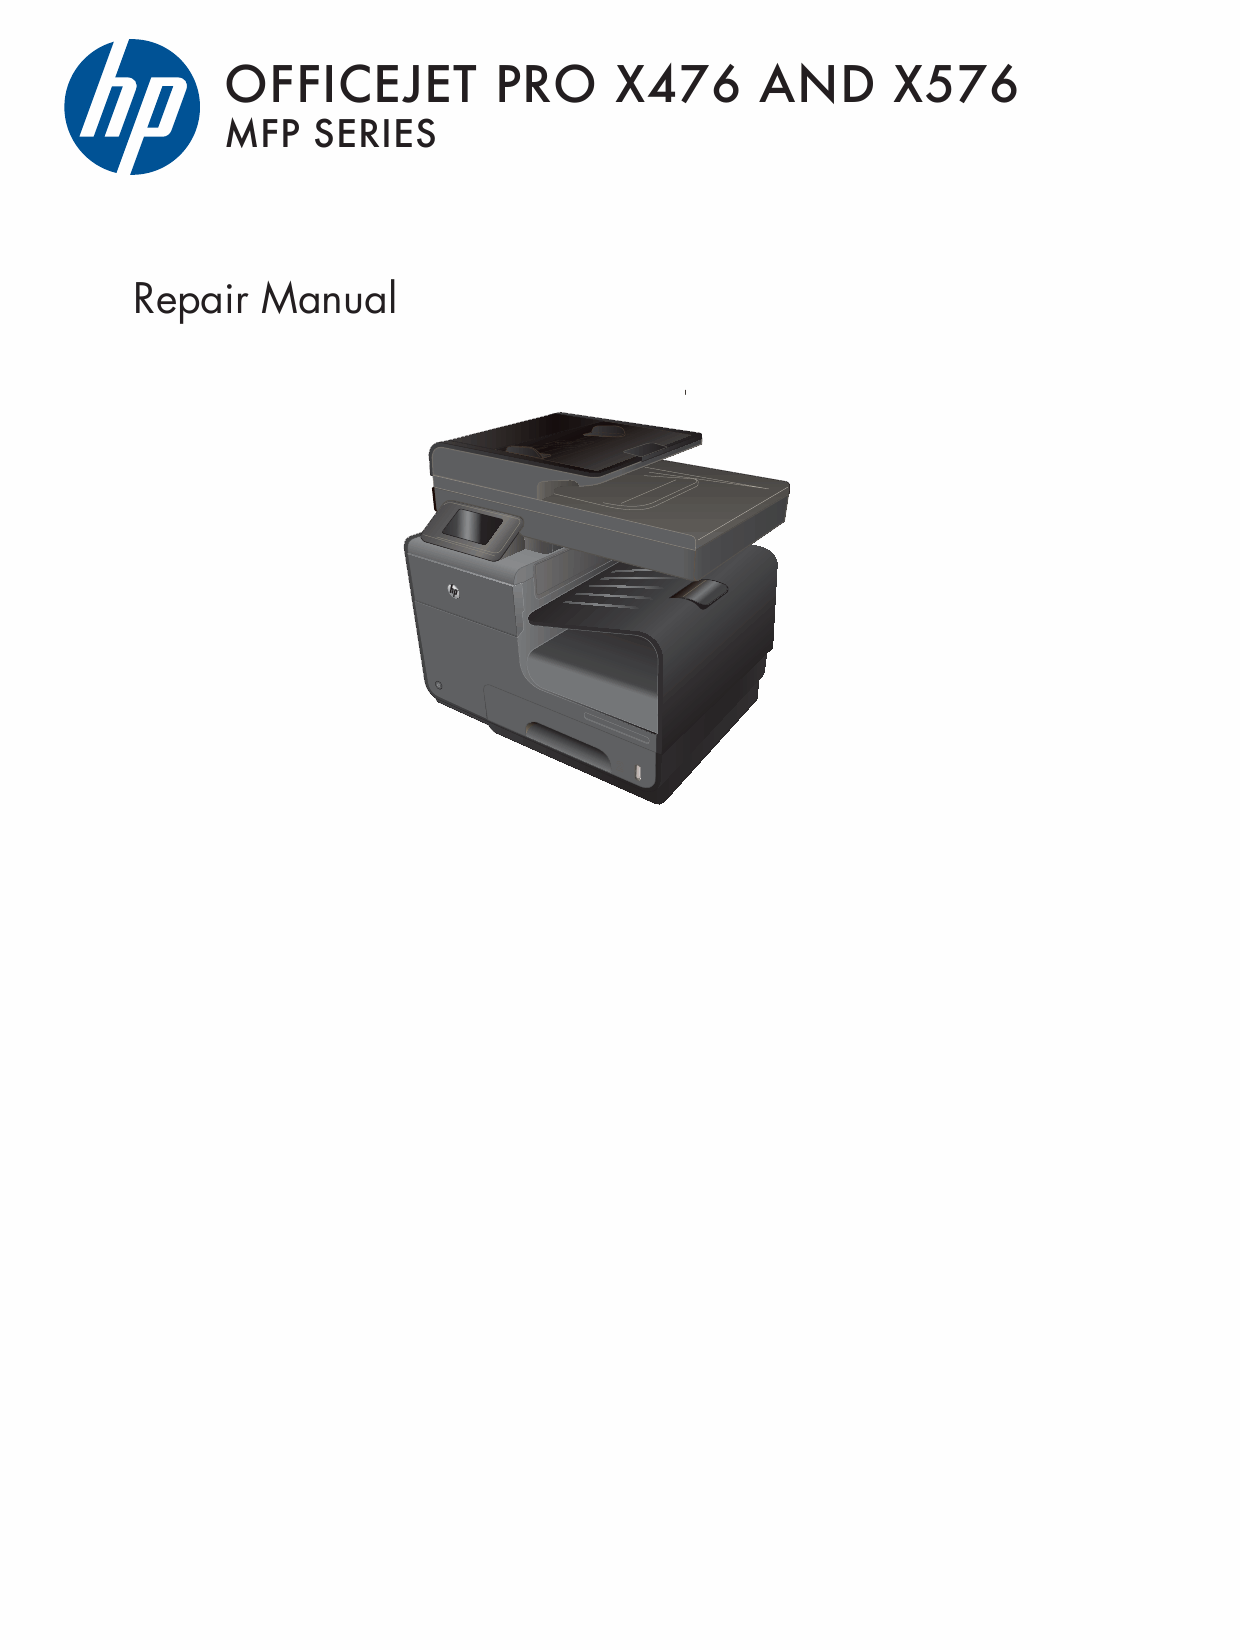 HP OfficeJet Pro X476-MFP X576-MFP Parts and Repair Guide PDF download-1